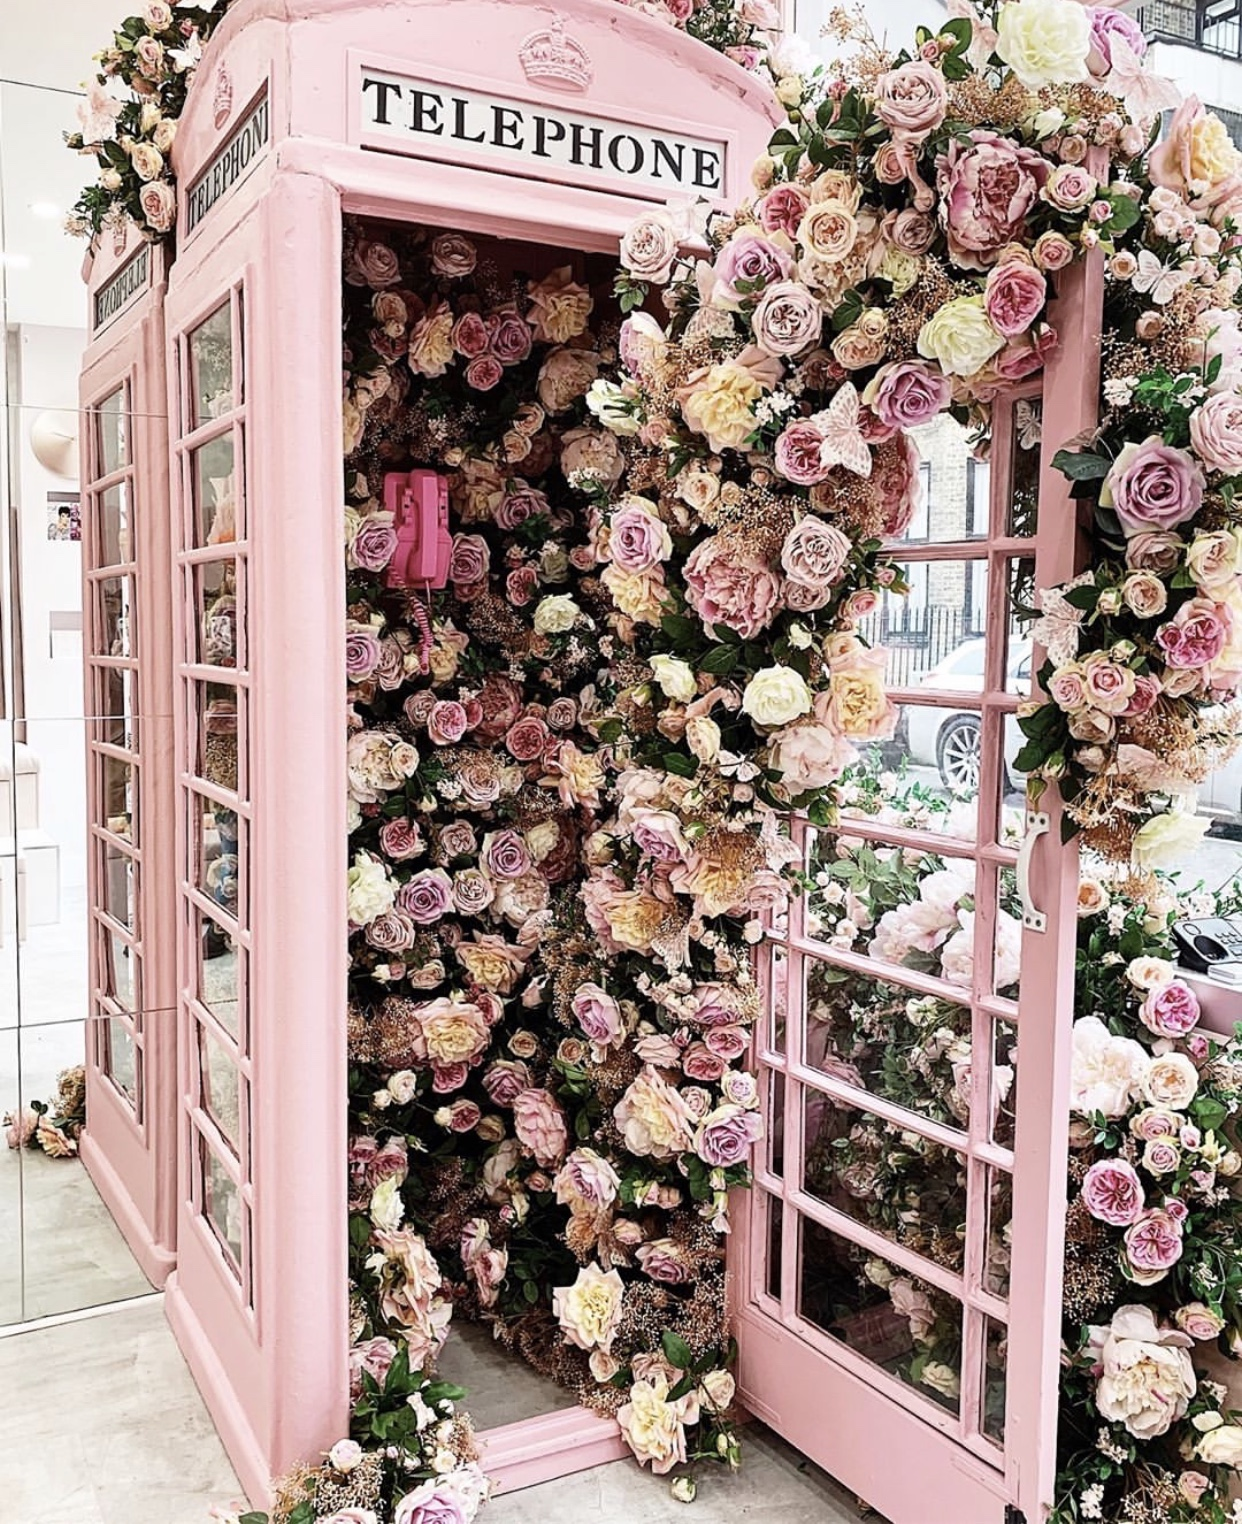 Pink London Phone Booth with Flowers.jpg